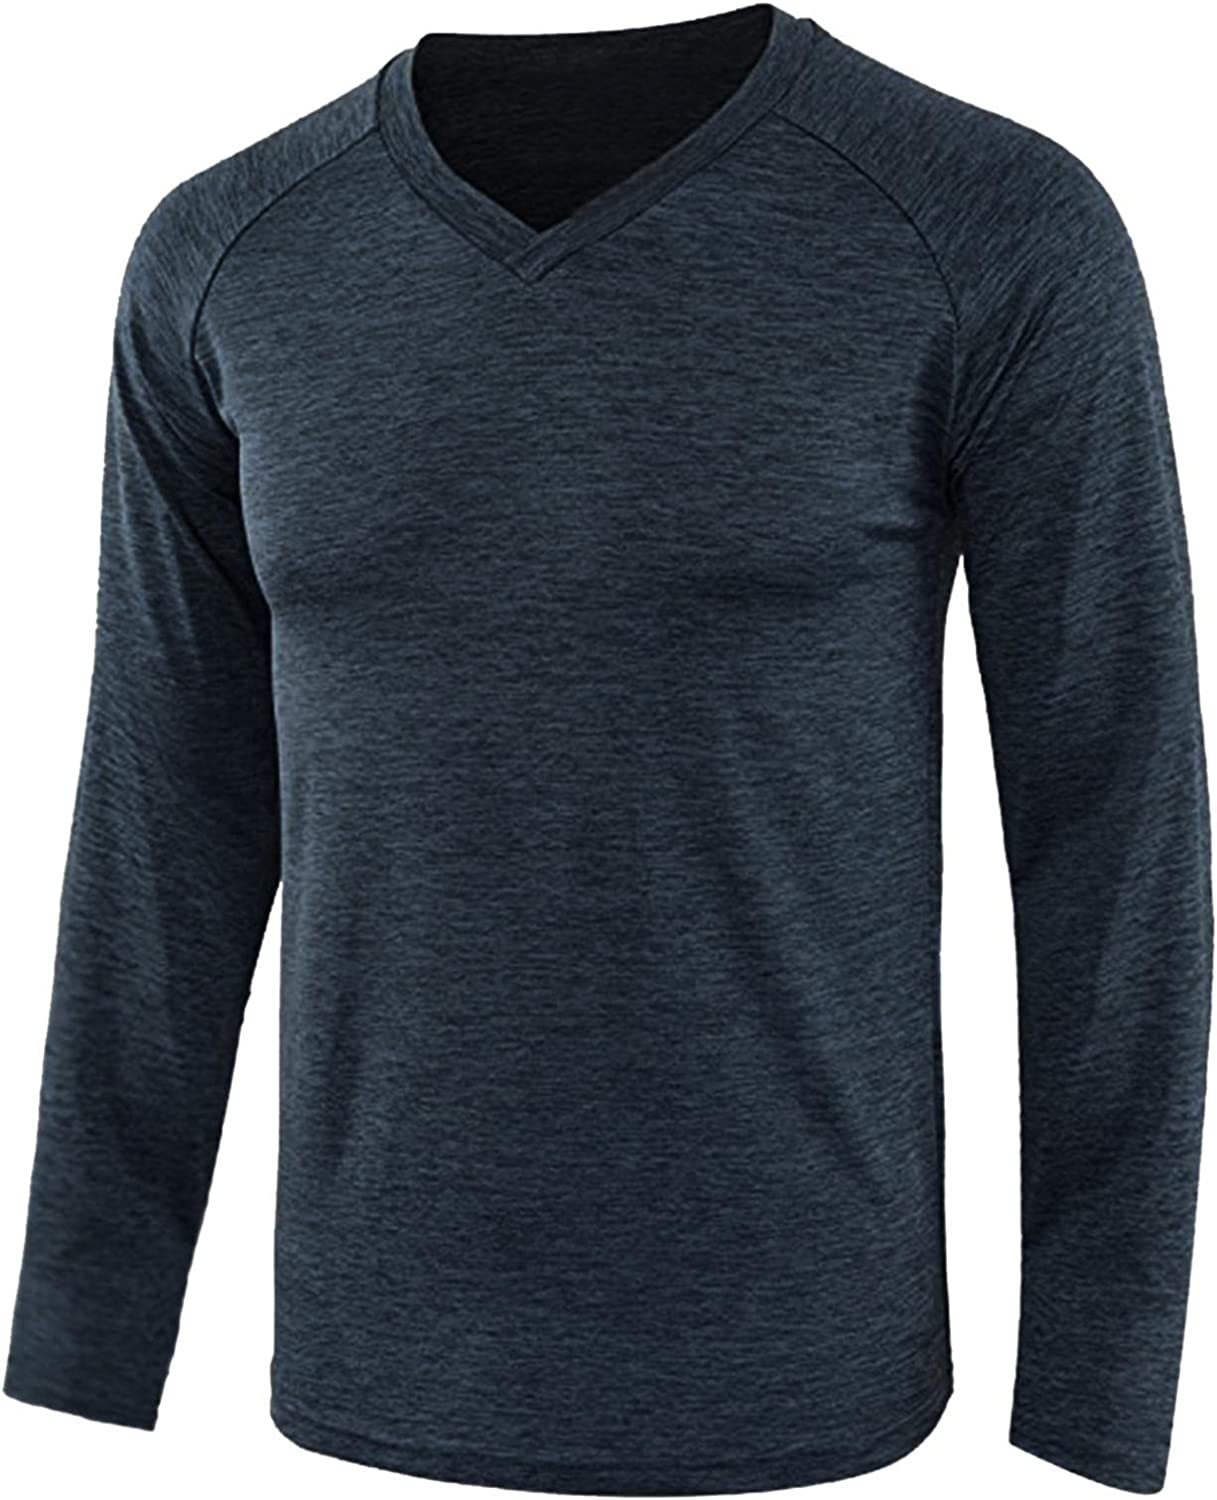 FUNEY Mens Casual Basic Lightweight Workout Shirts UPF 50+ Sun Protection Raglan Solid Tops Long Sleeve Tee Shirts for Men